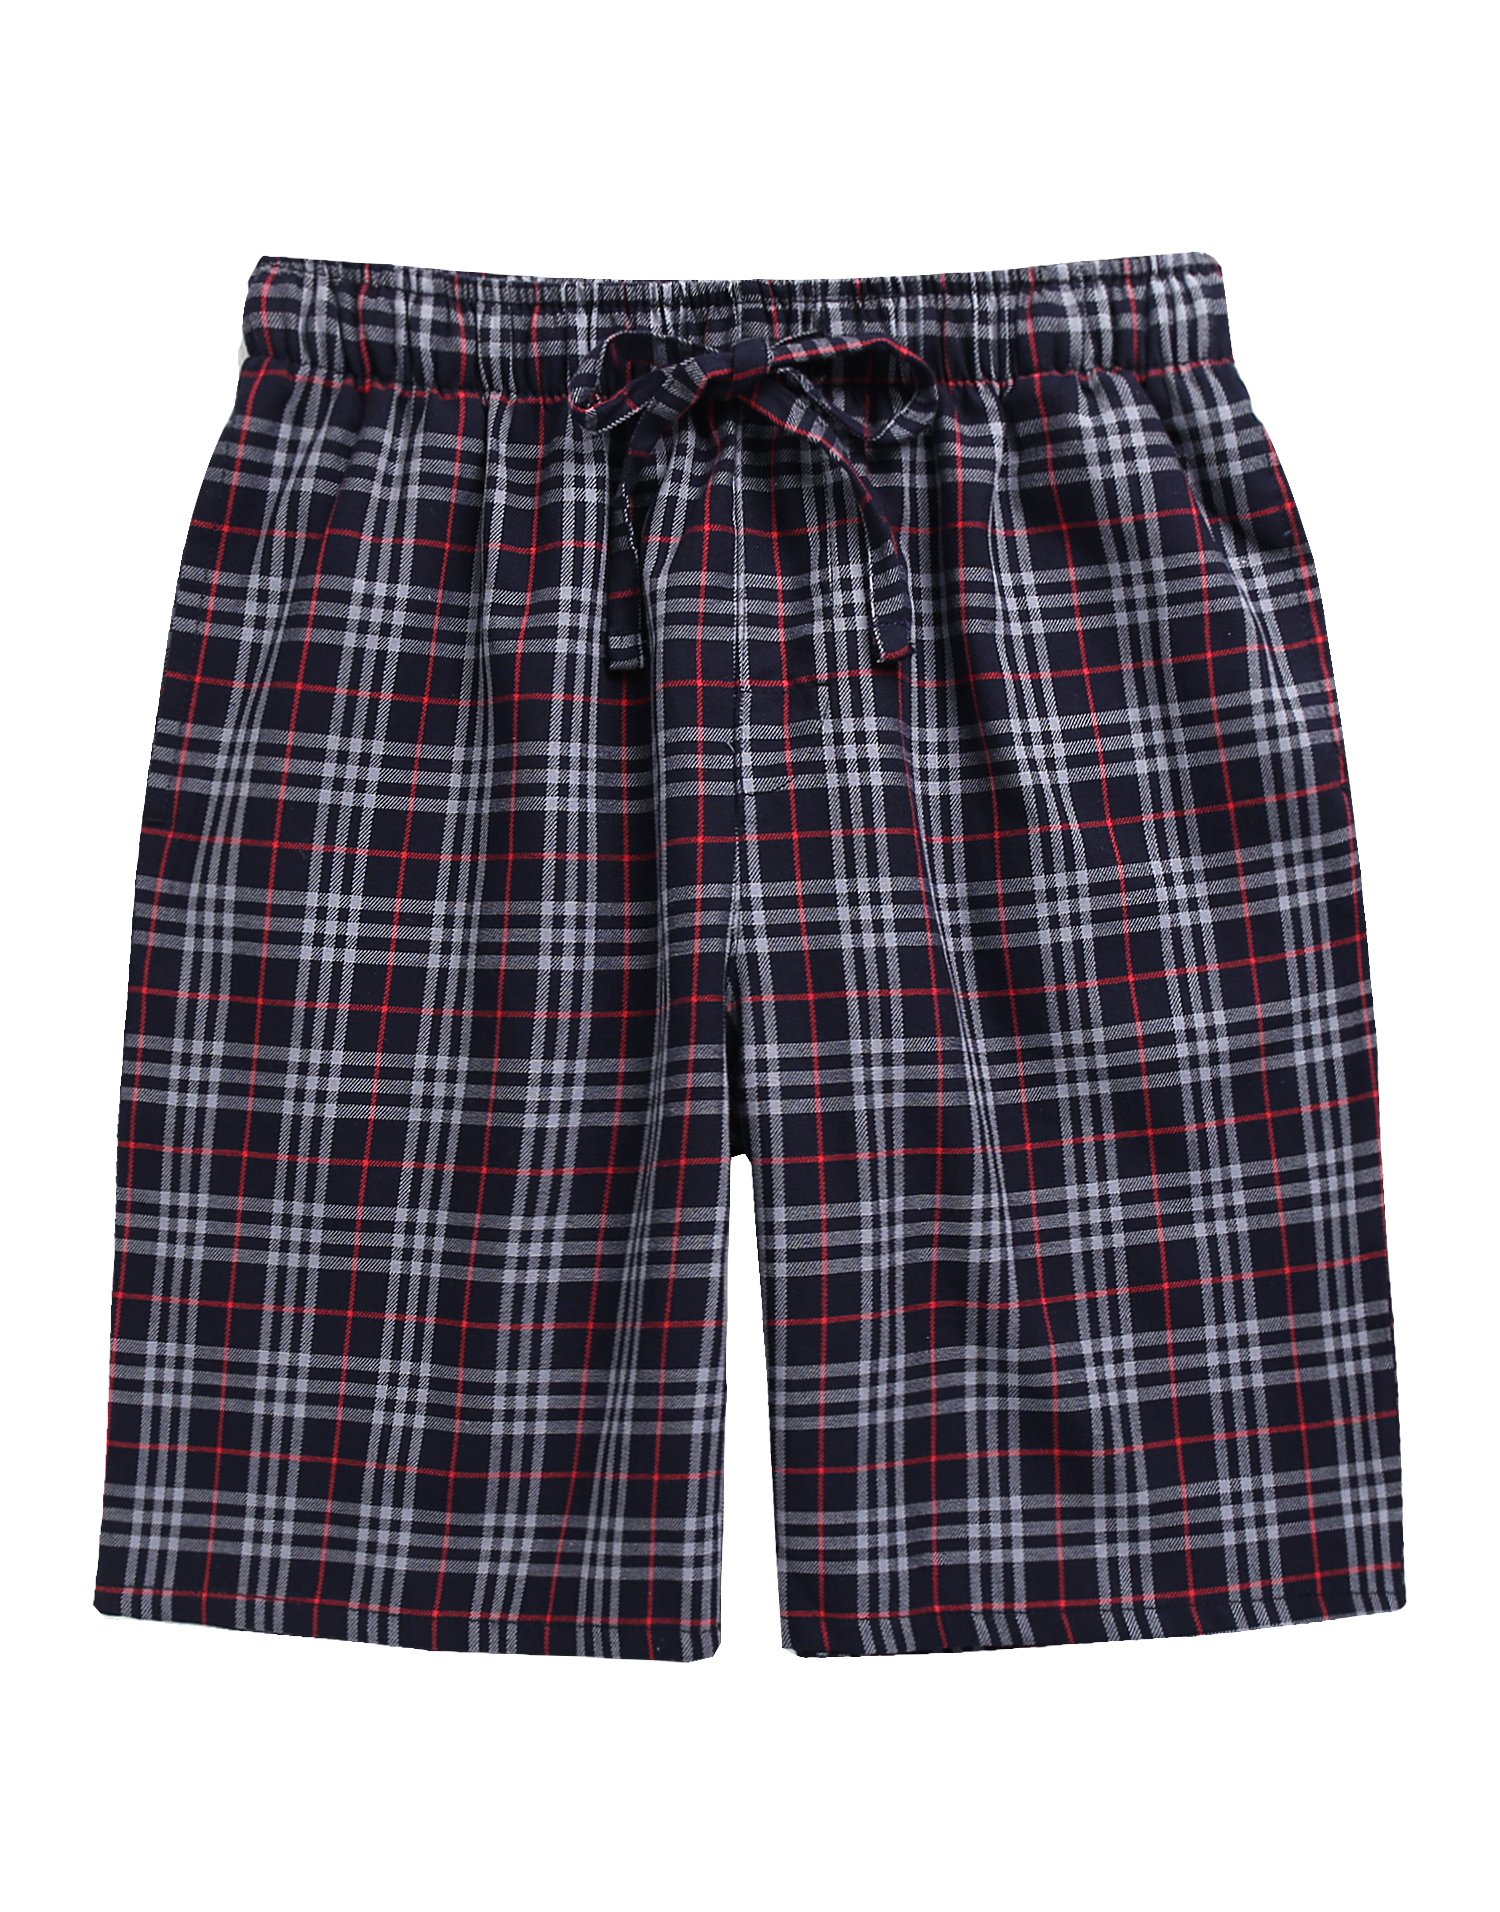 TINFL Boys Soft Cotton Plaid Check Sleep Lounge Shorts BSP-SB002-DarkGrey M